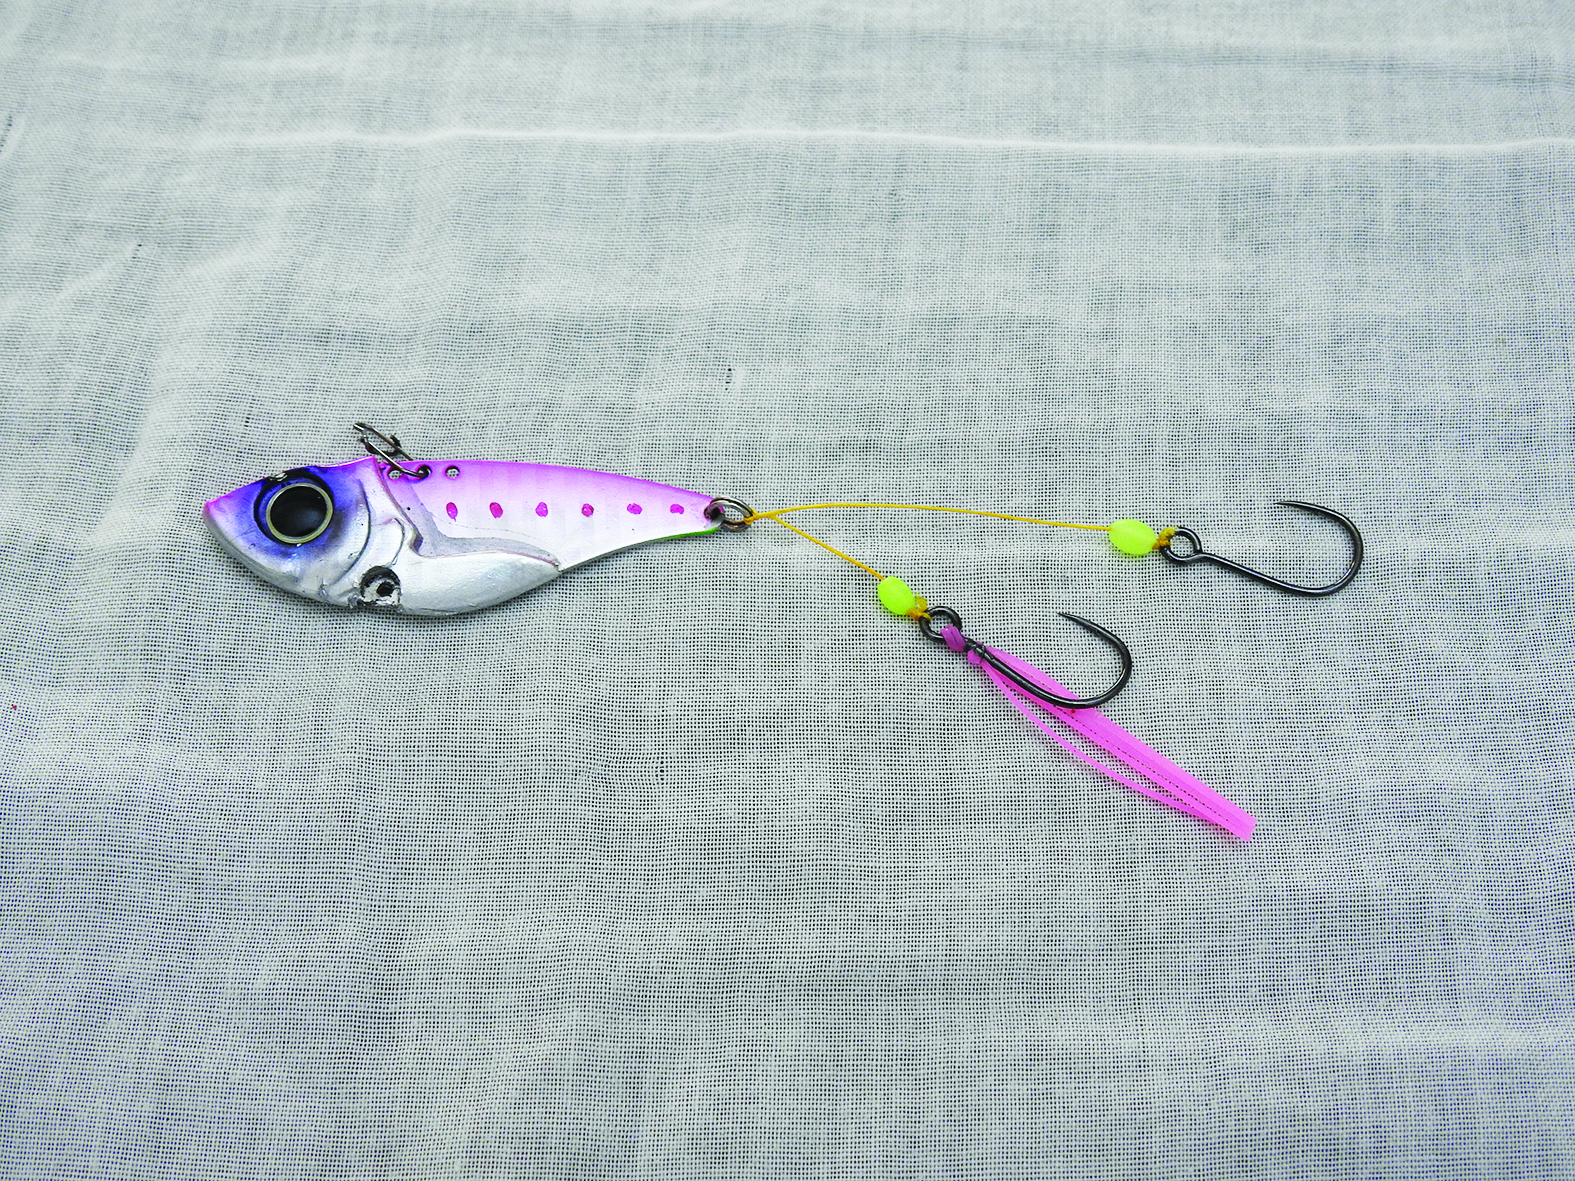 Fit your stingers to the lure.